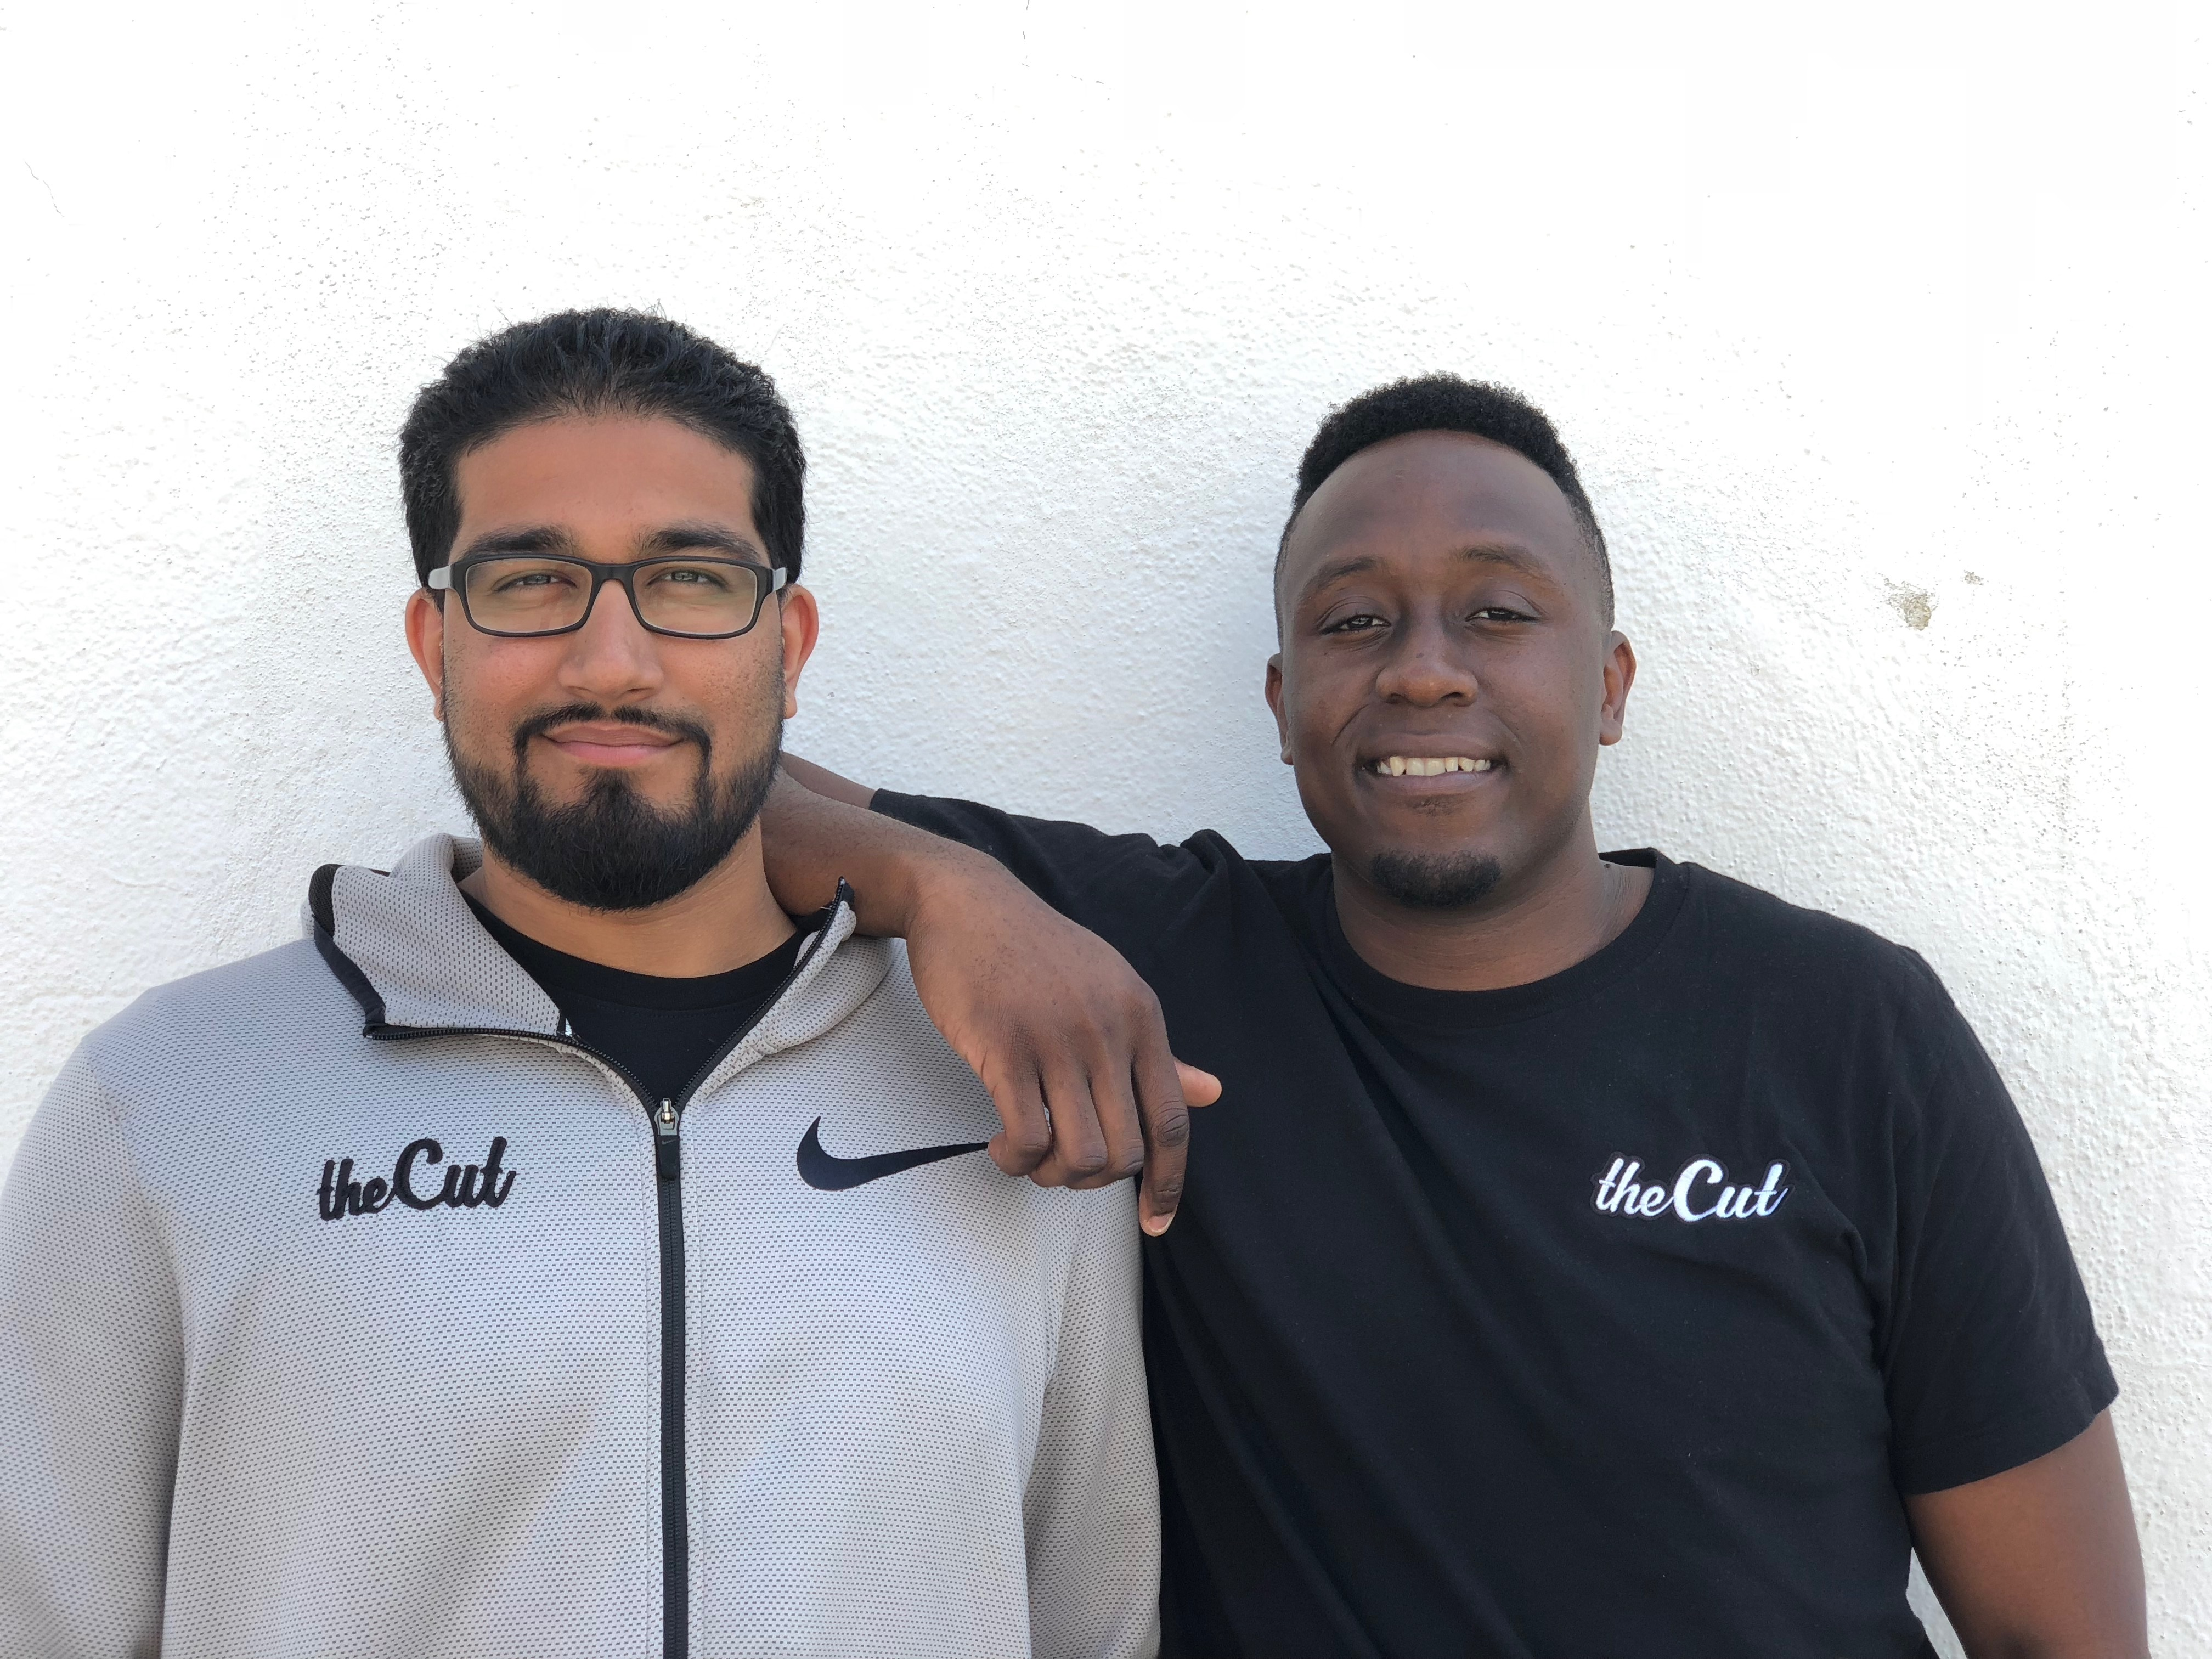 theCut Co-founders Kush Patel and Obi Omile Jr. are trying to boost voter turnout